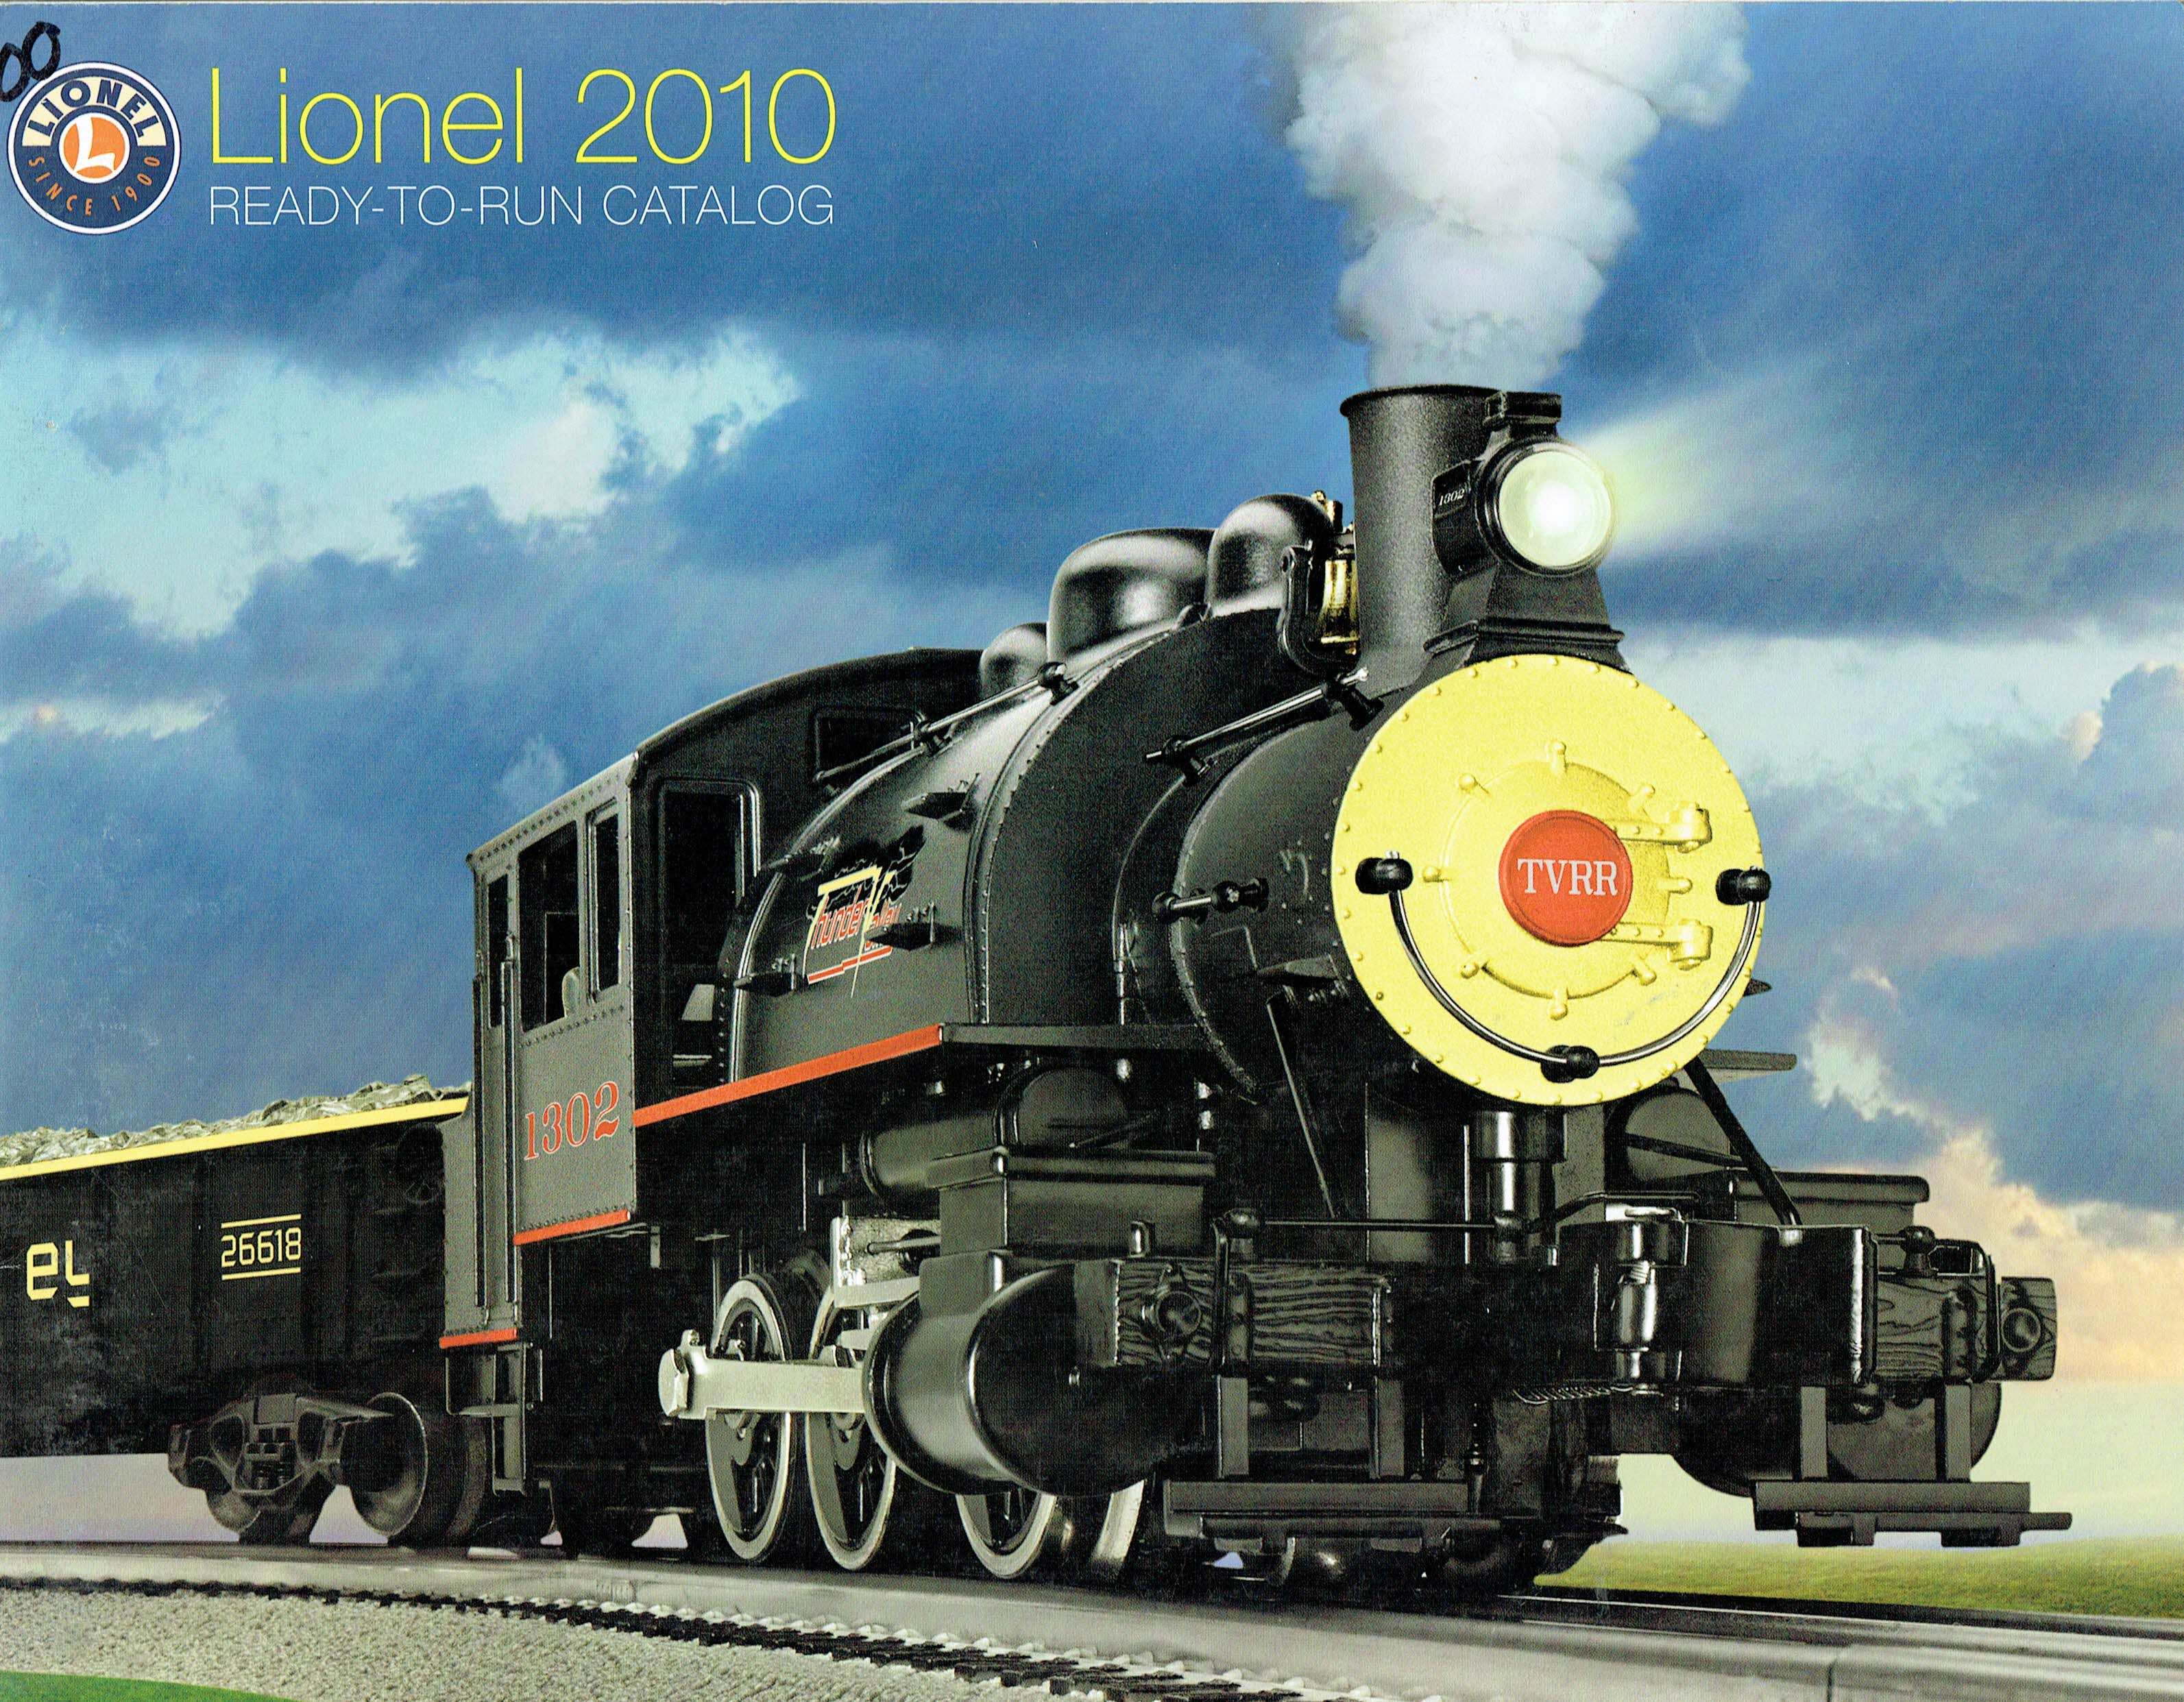 Lionel 2010 Ready-to-Run Catalog image